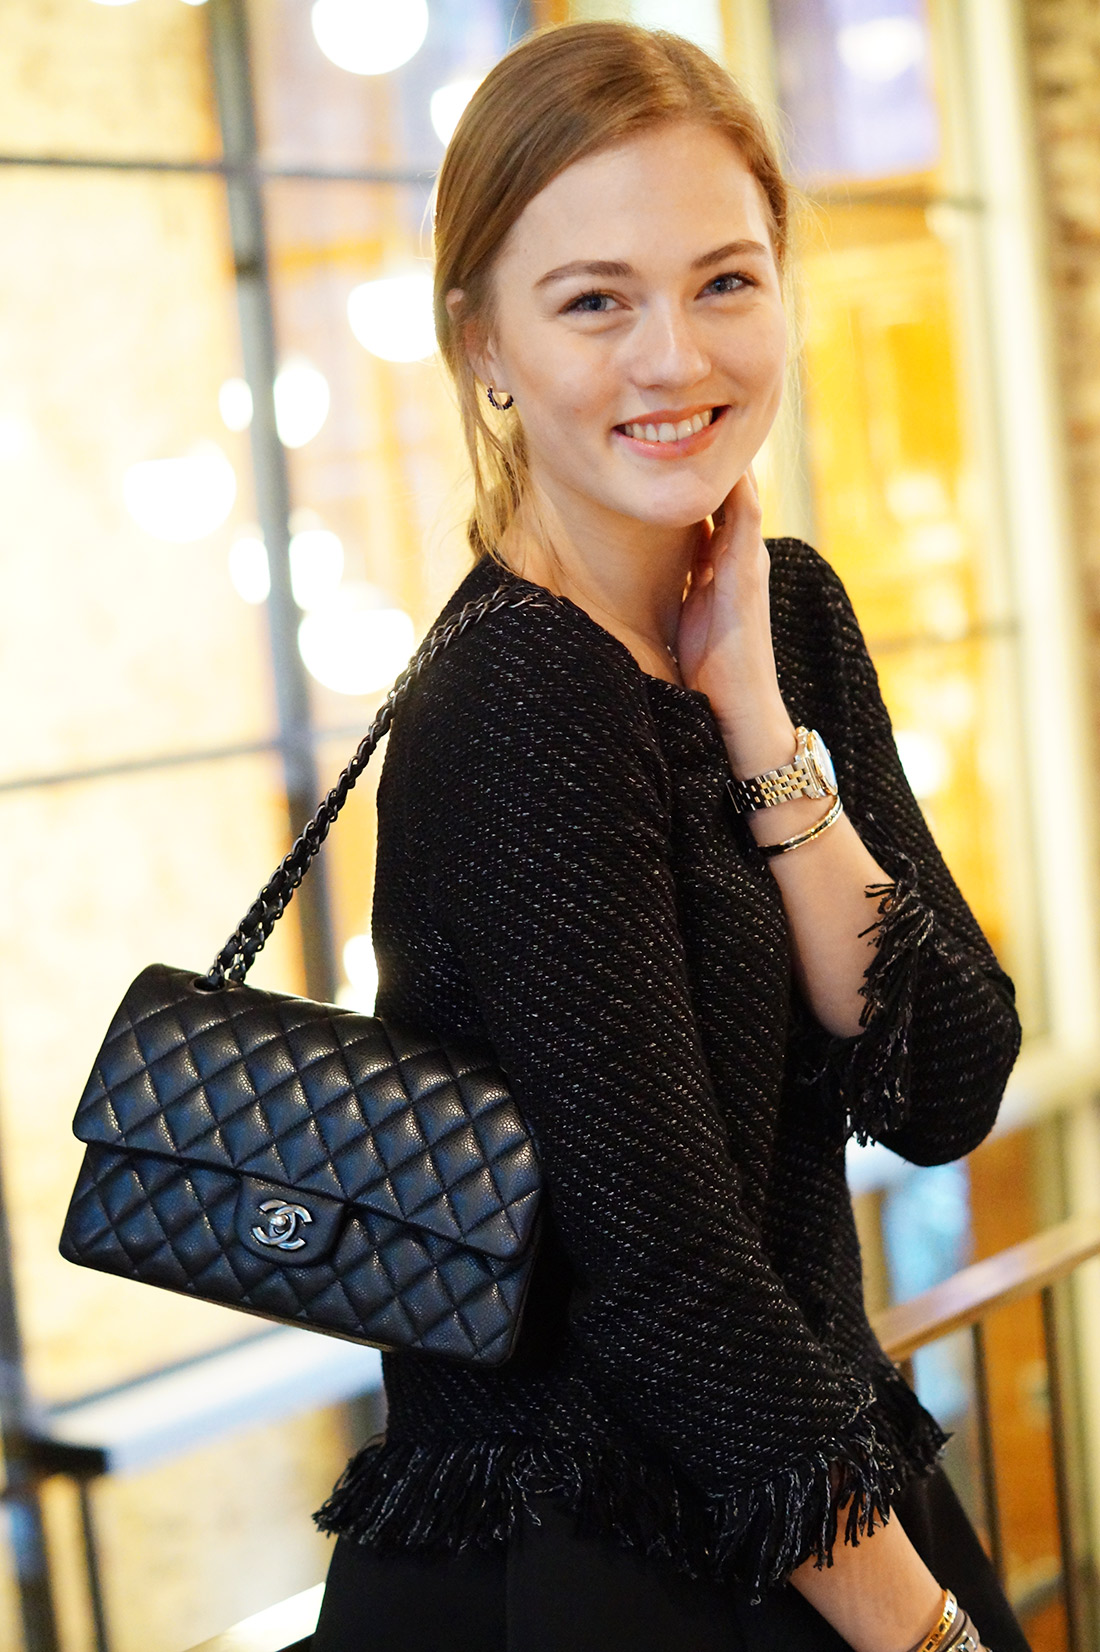 Bag-at-you---Fashion-blog---The-bag-of-Floortjeloves---Chanel-classic-black---The-Hoxton-Amsterdam